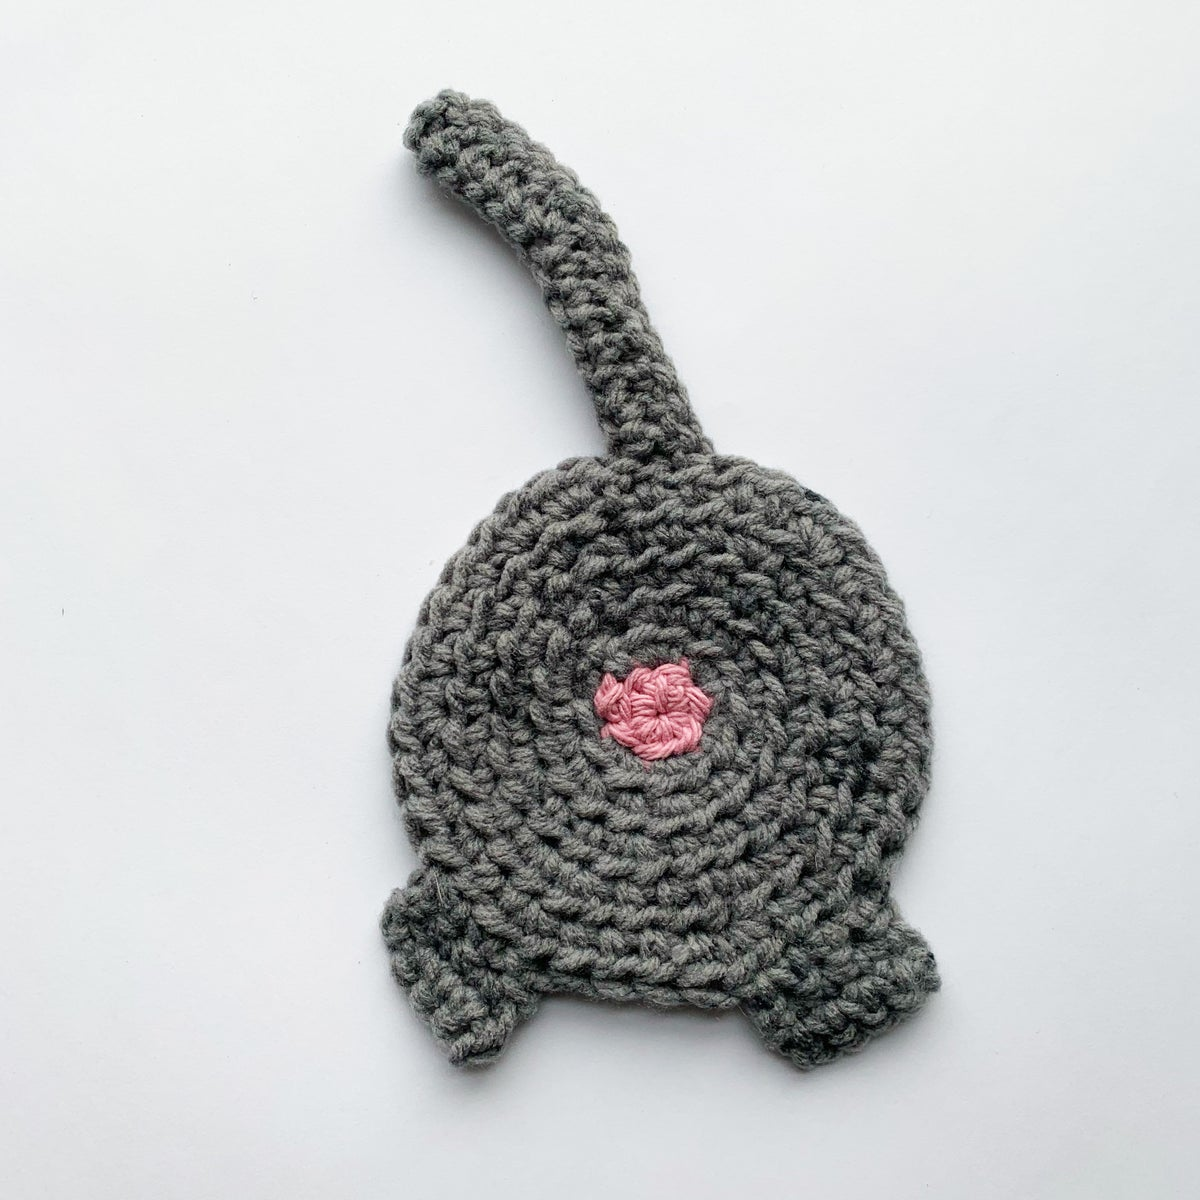 Image of Cat-Tail Crocheted Coaster